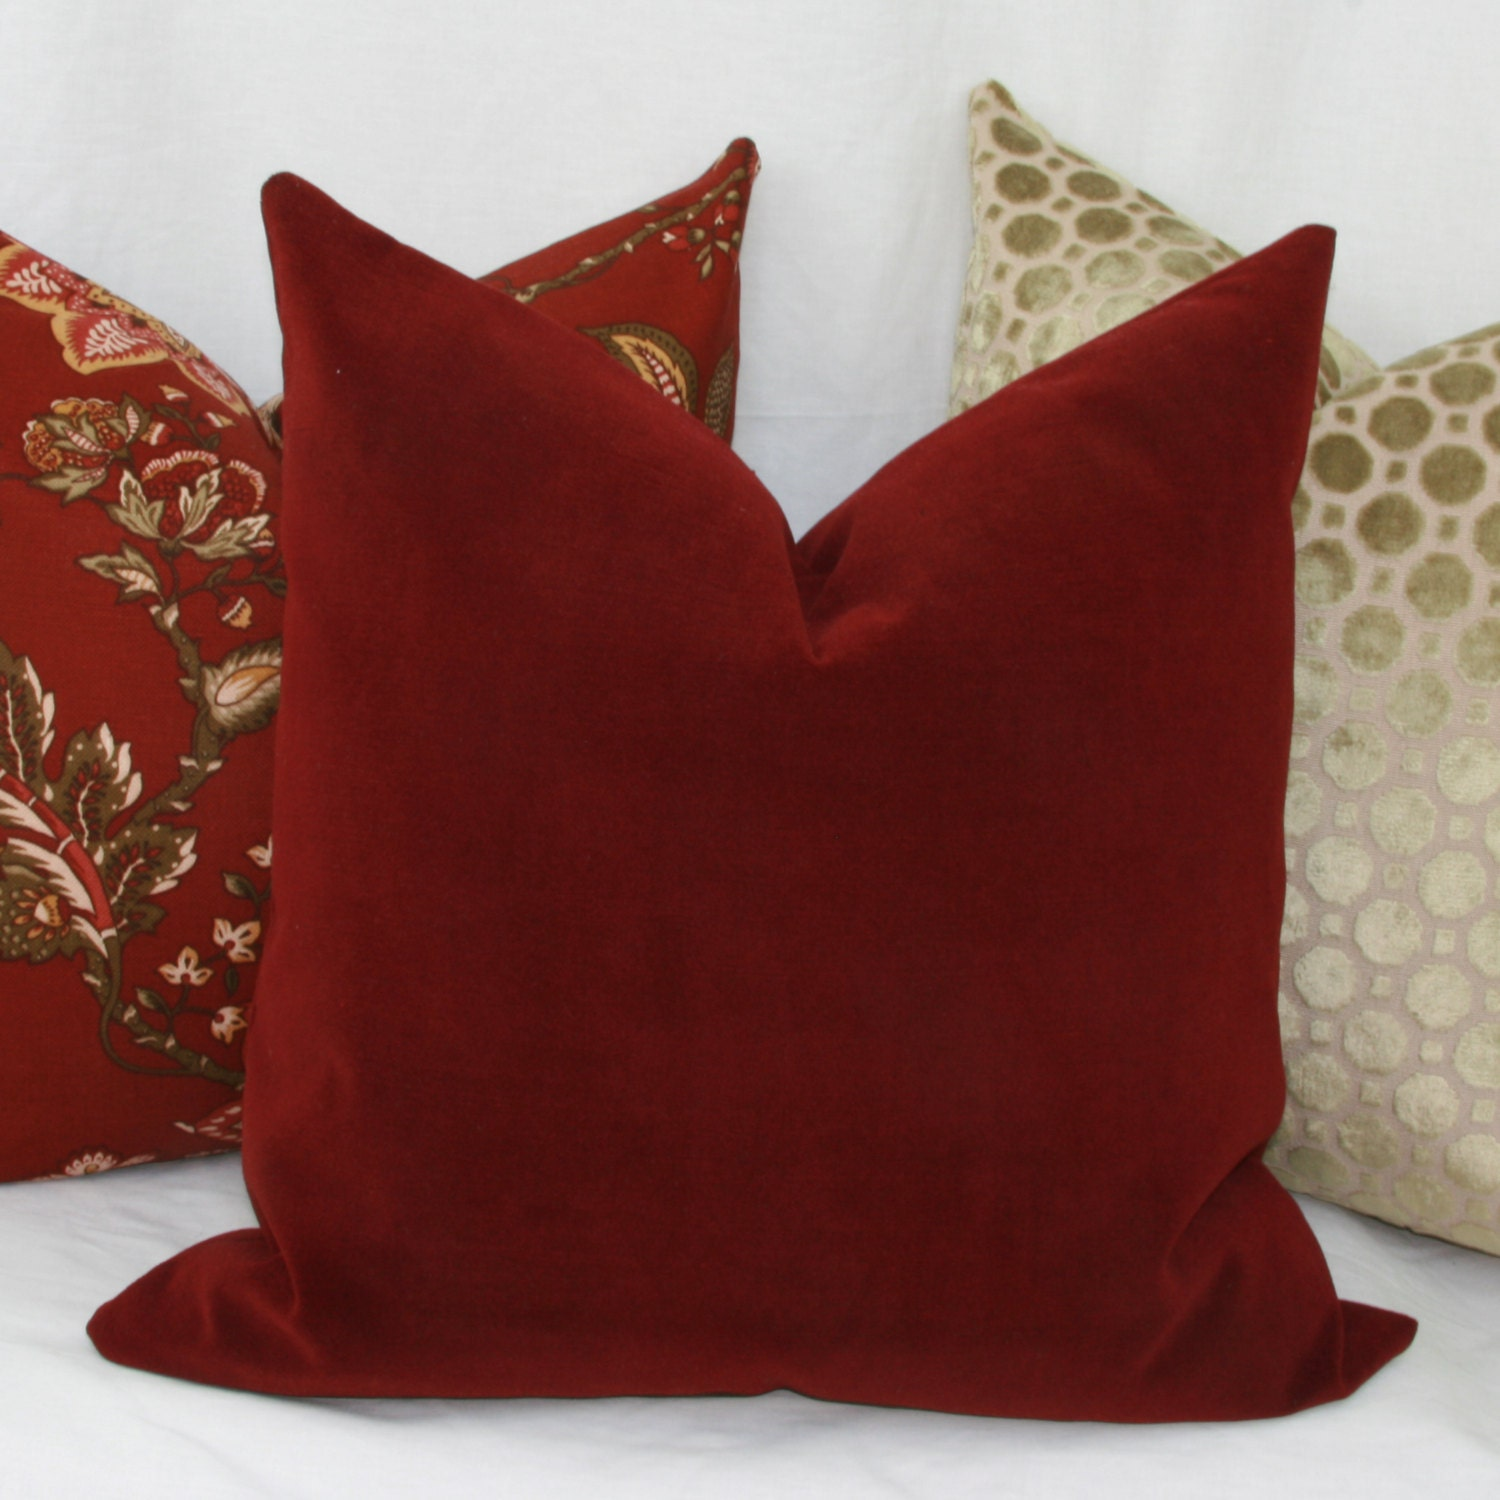 Velvet Decorative Pillow Covers : Burgundy velvet decorative throw pillow cover Lumbar pillow